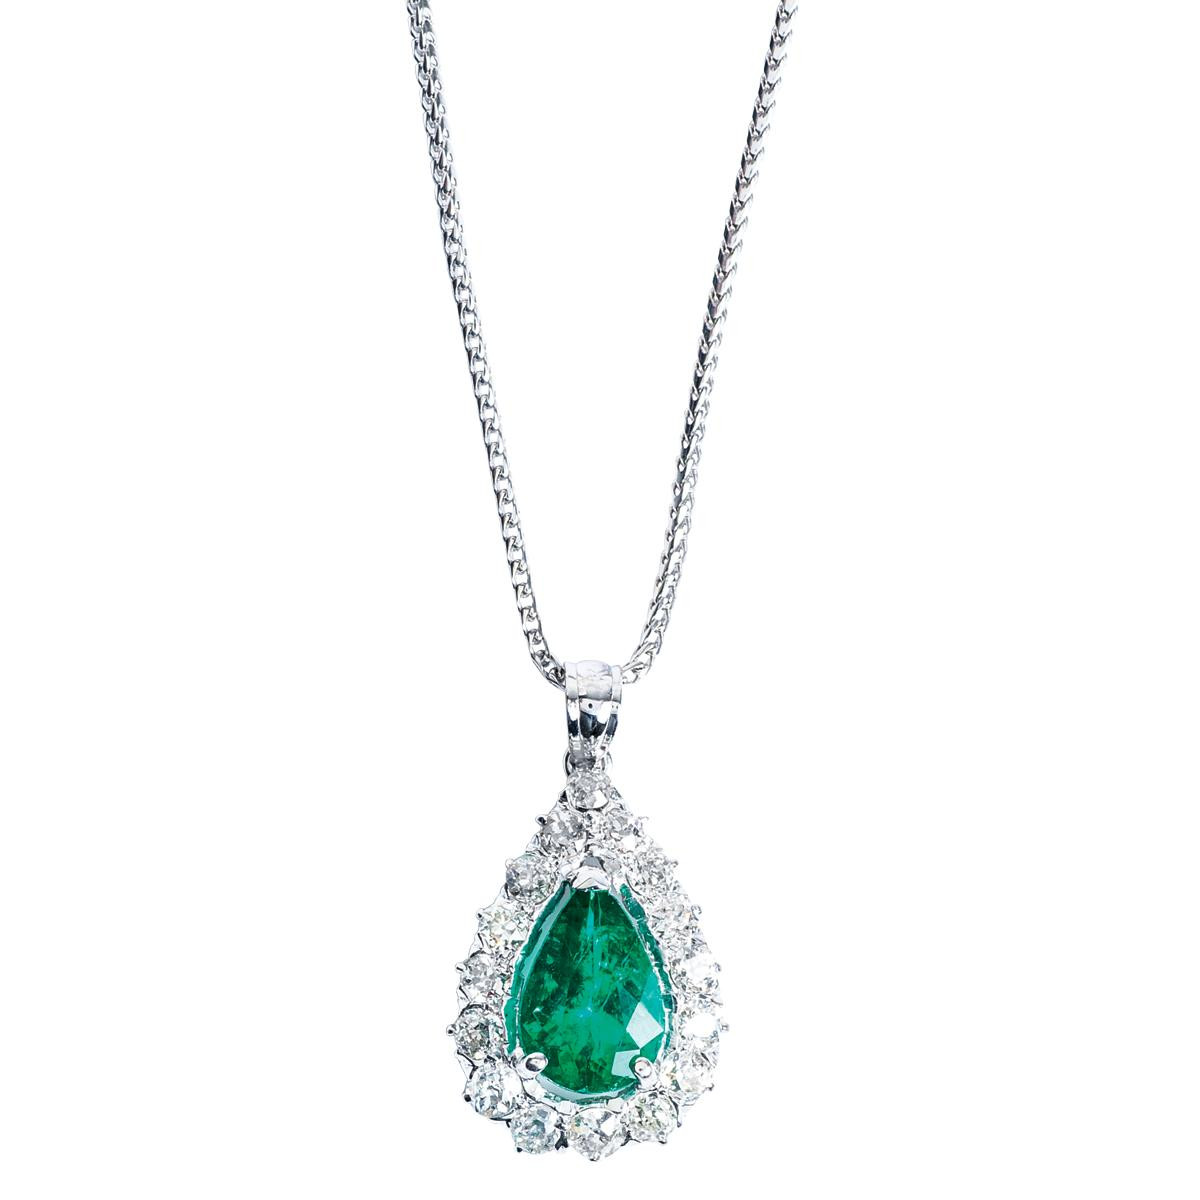 Antique 2.93 CTW Pear Shape Emerald & Diamond Pendant